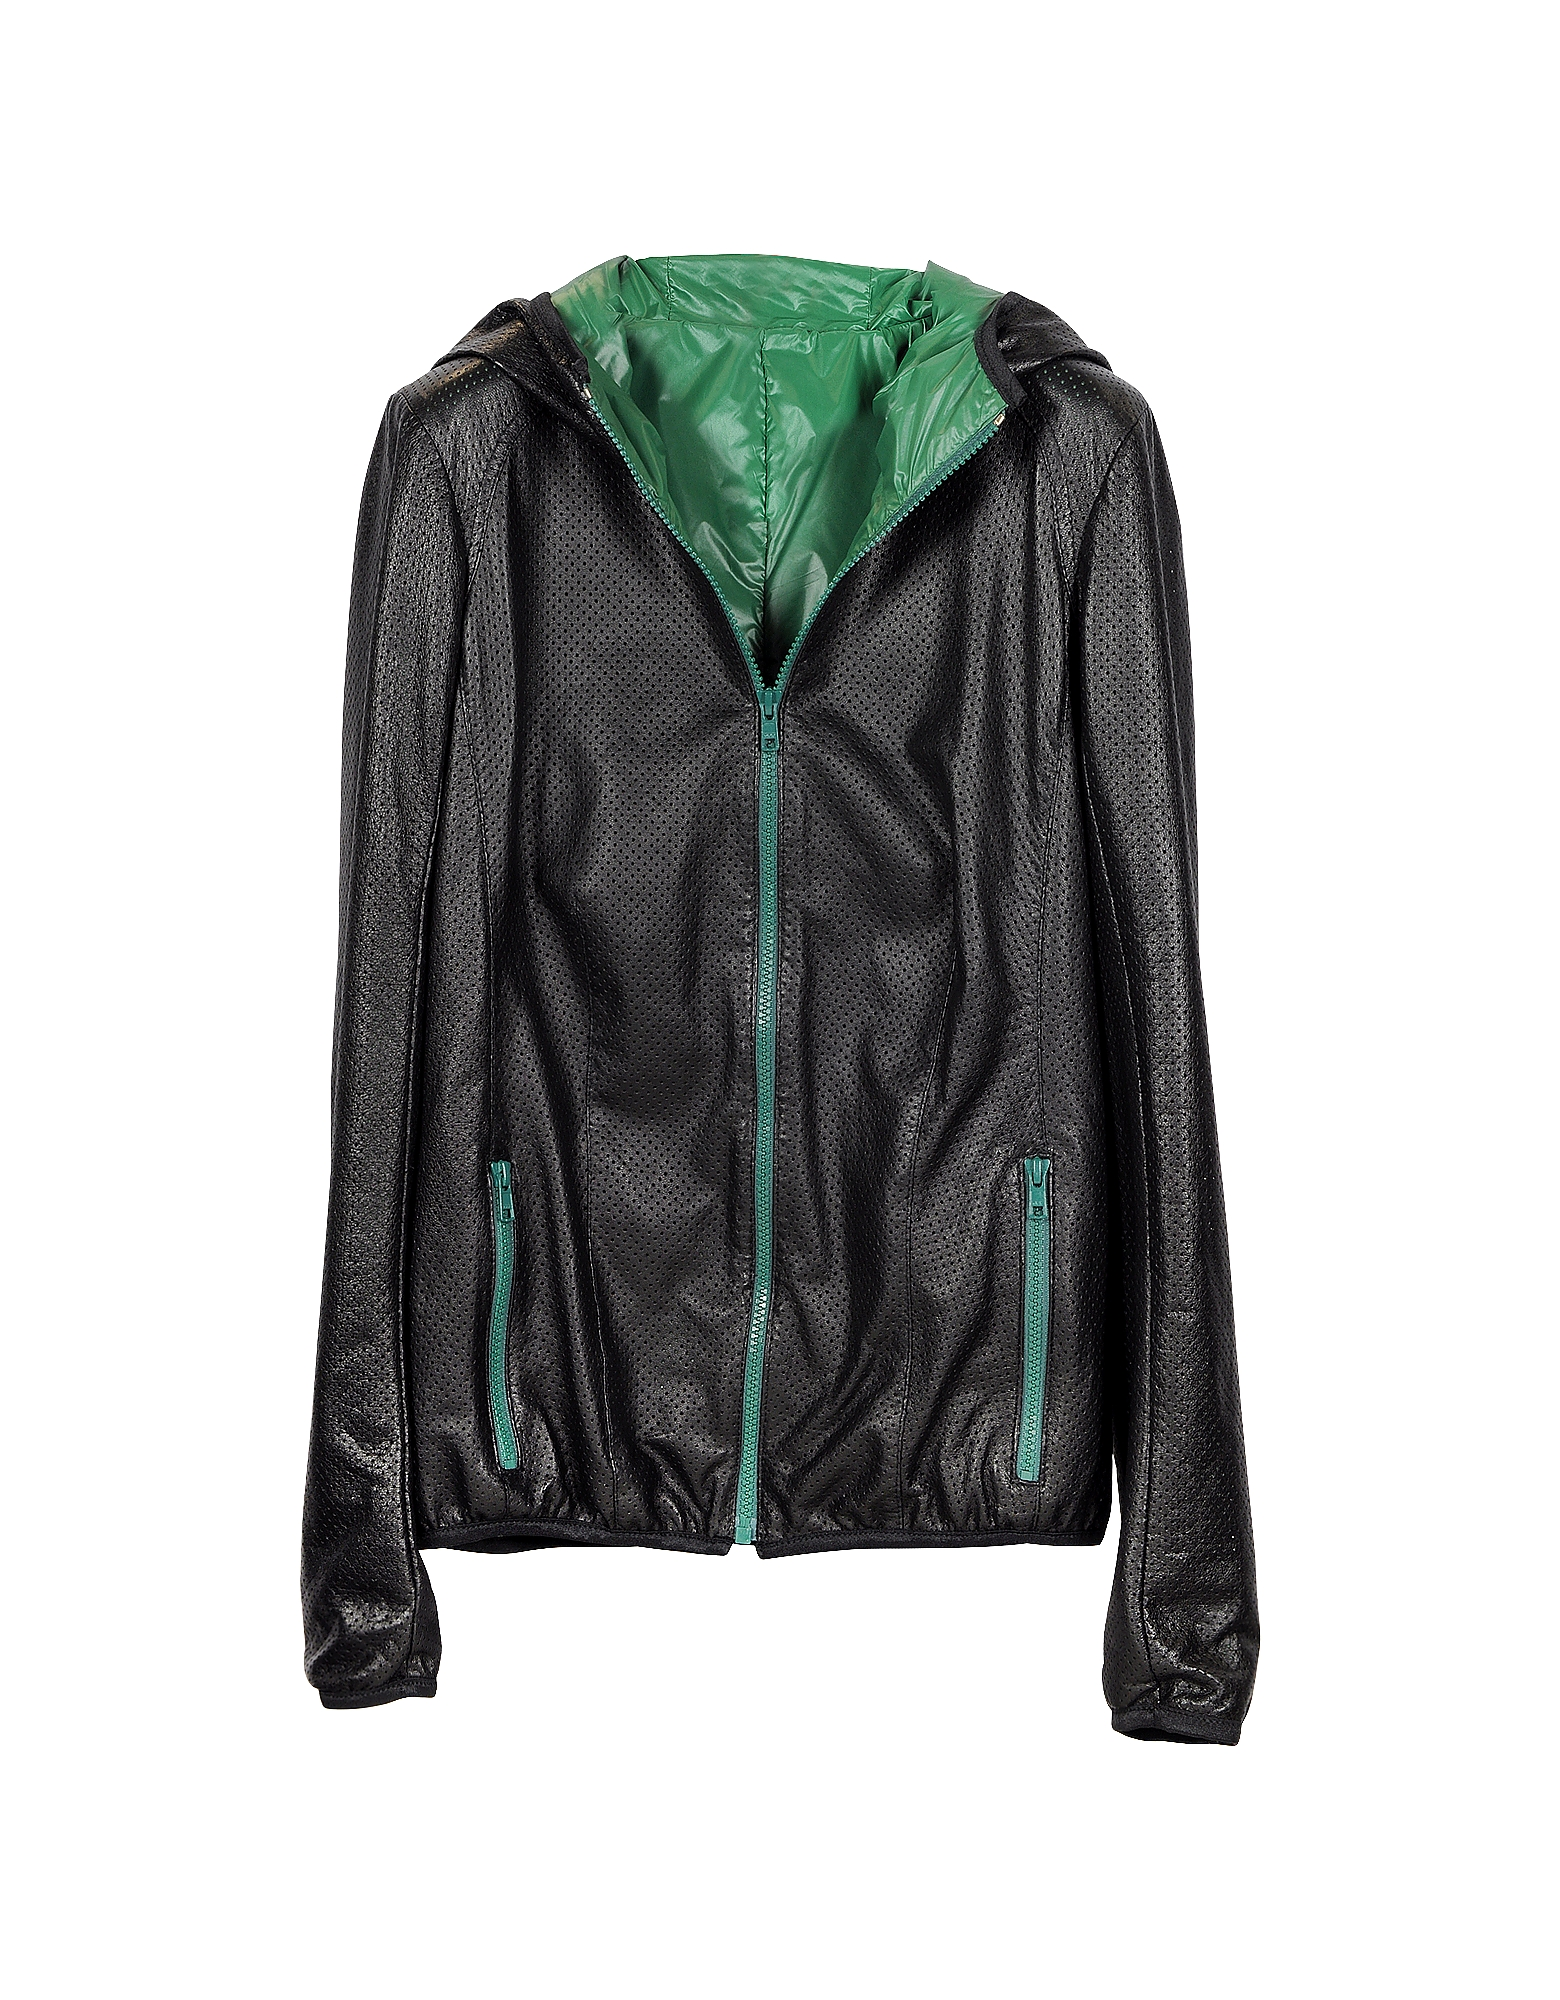 Black Hooded & Perforated Leather Women's Jacket от Forzieri.com INT